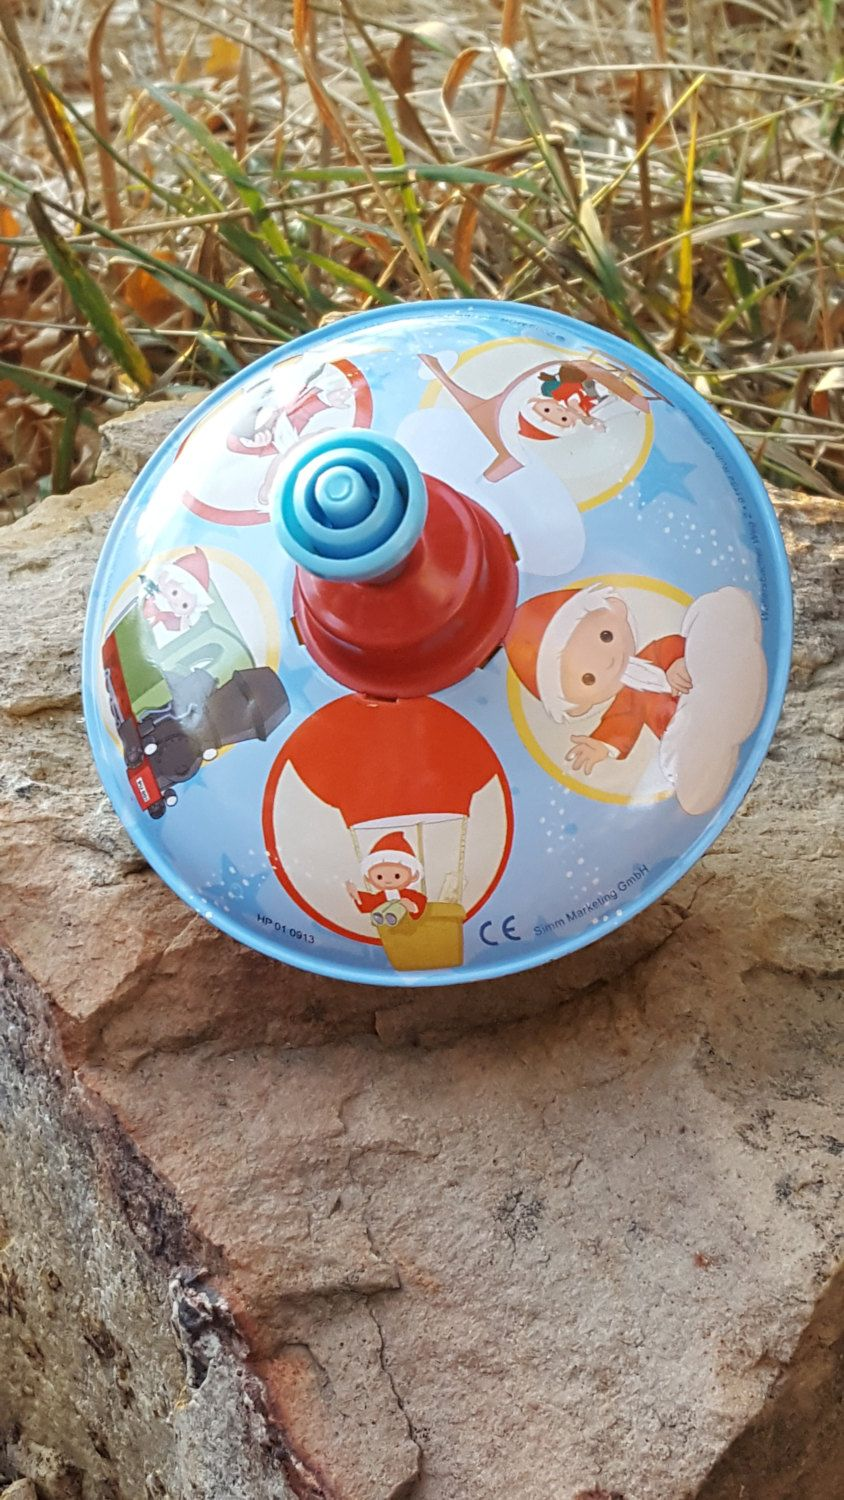 Vintage Child Top~Made in Germany GMBH~Christmas Elves/Santa Claus Top~Spinning Top~Child Toy~Christmas Top~Works great! ~ JewelsandMetals. by JewelsandMetals on Etsy